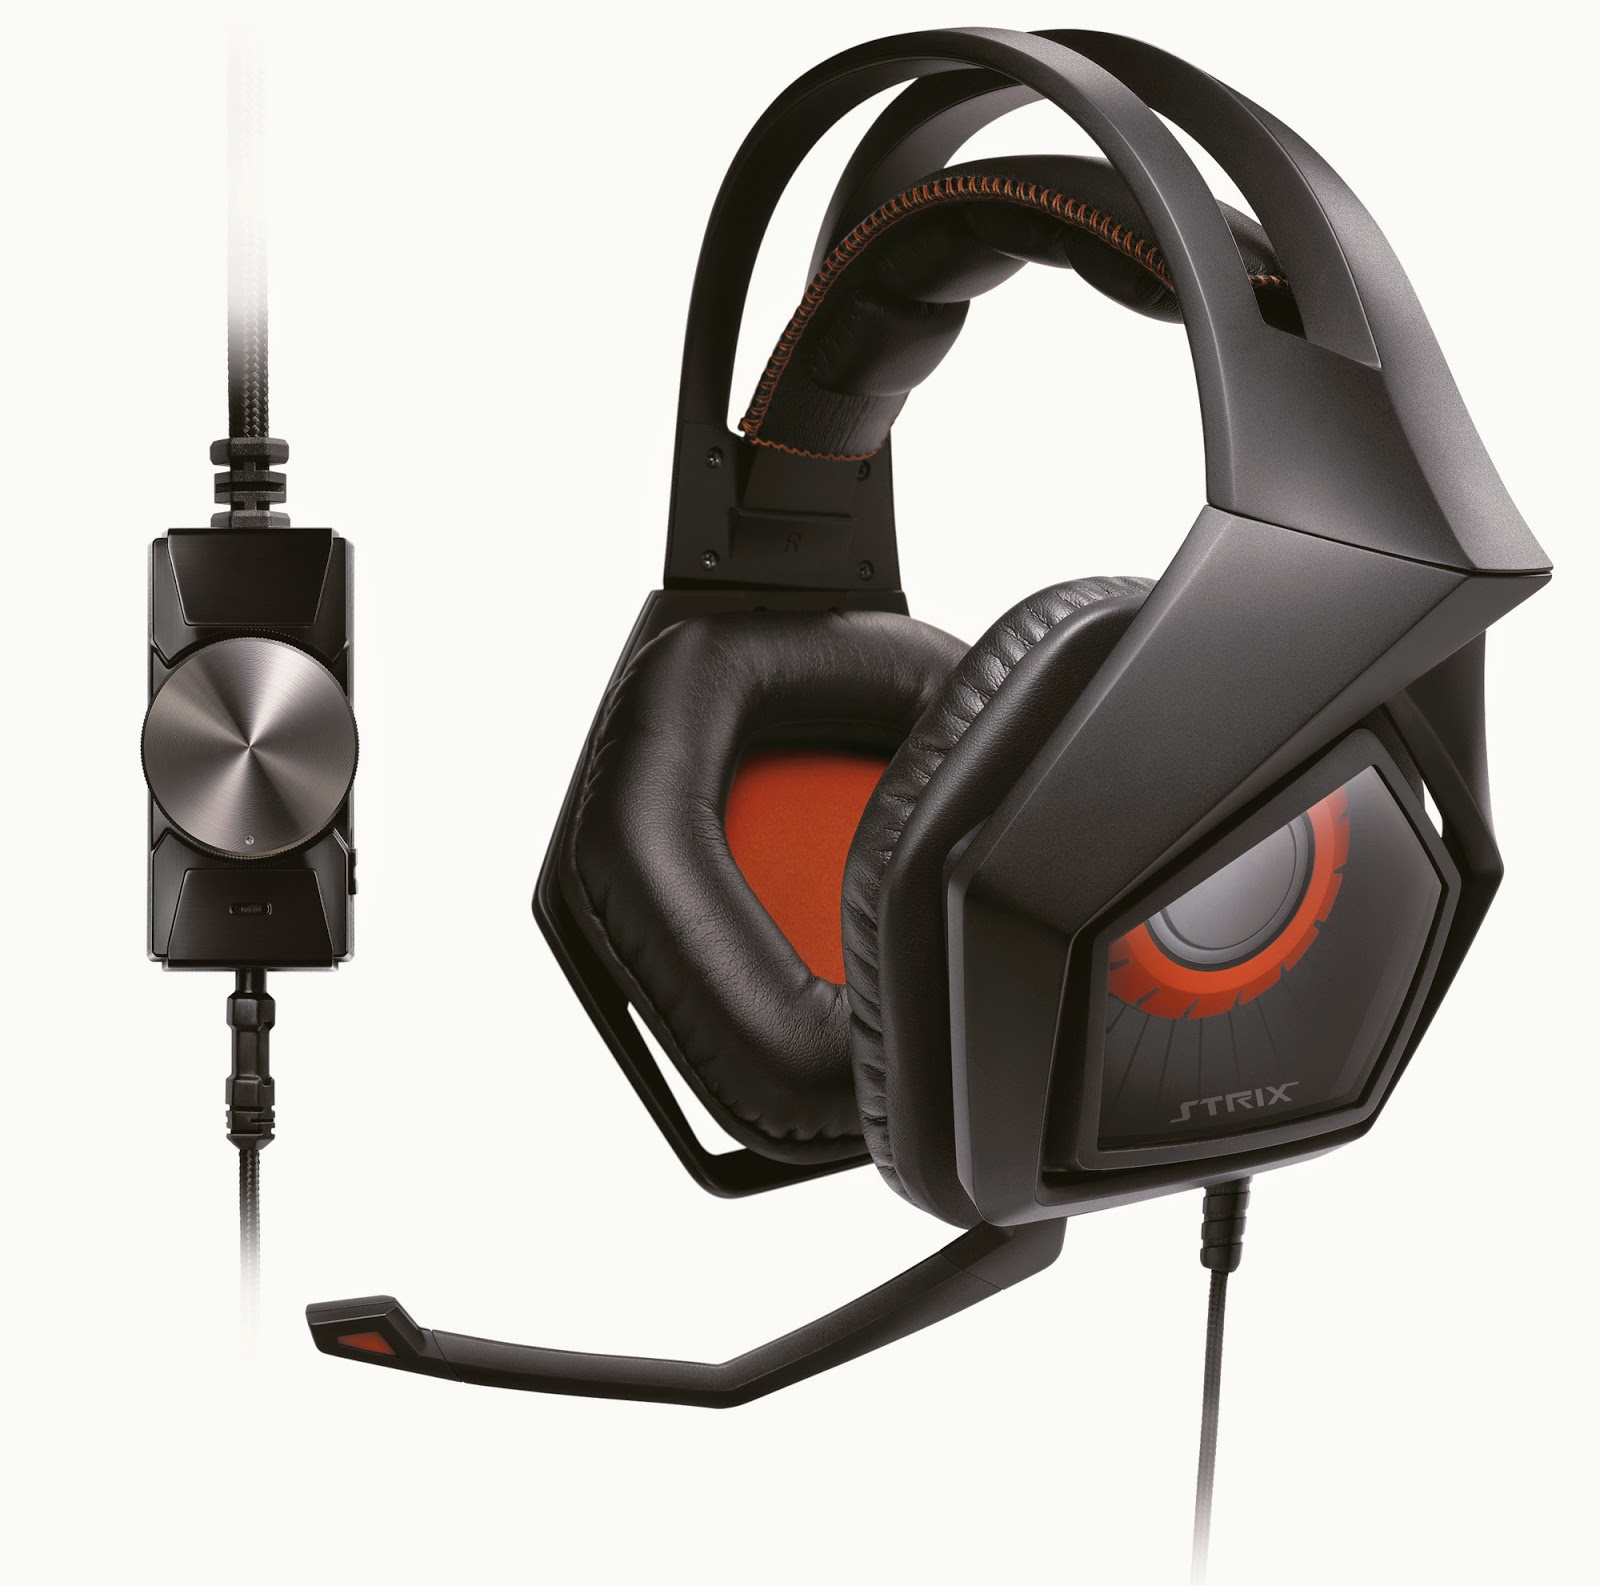 the first headset i got to try out was the strix pro a mid ranged headset with a detachable microphone volume control switch